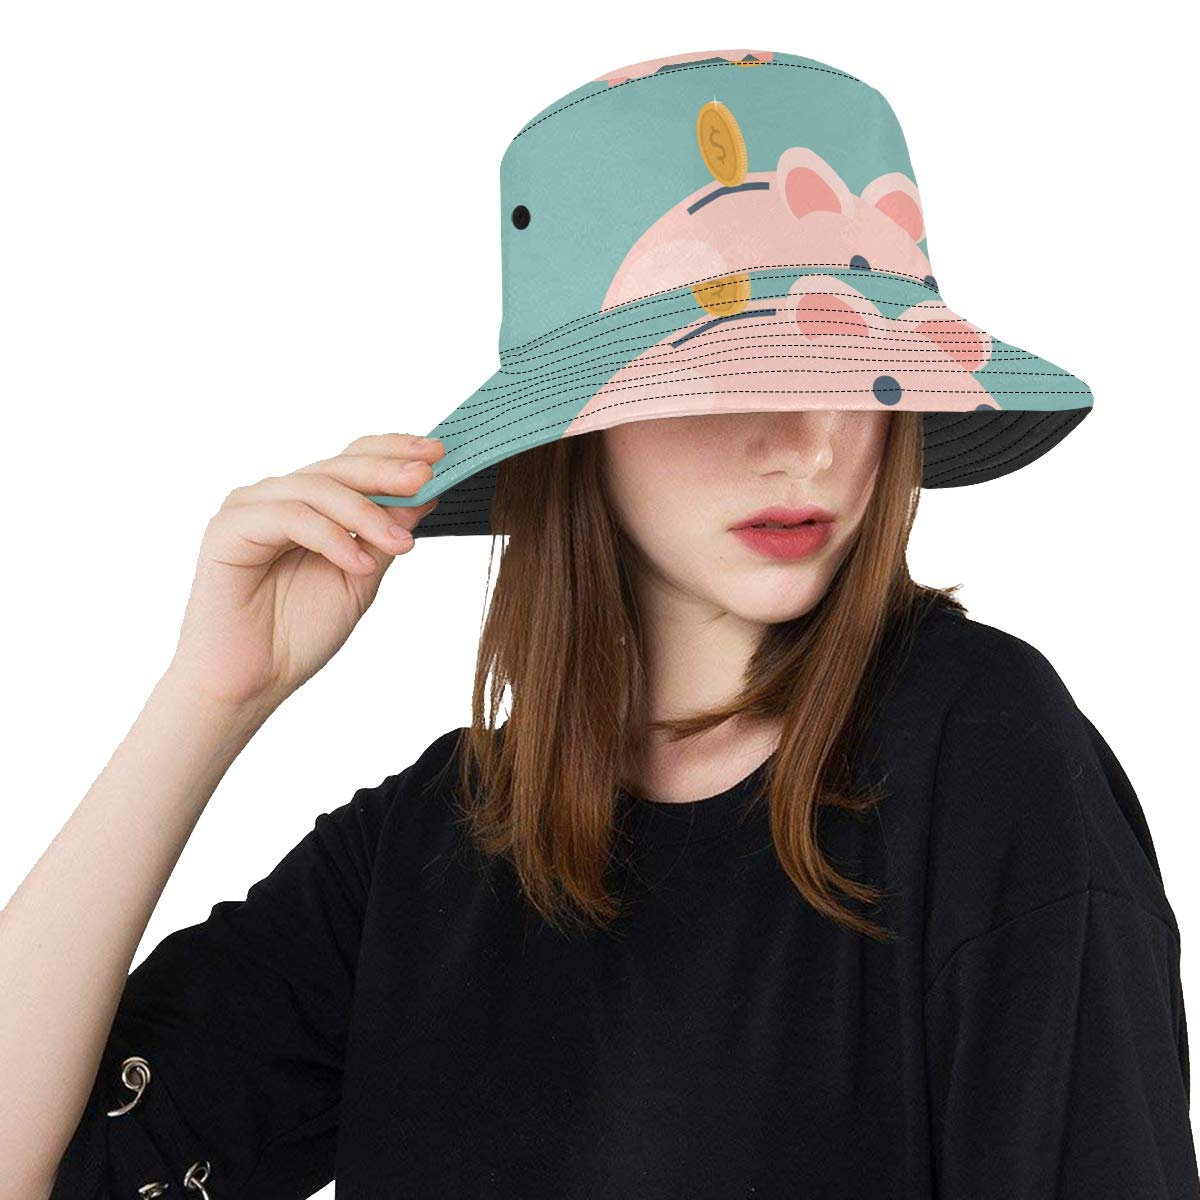 Women and Men with Customize Top Packable Fisherman Cap for Outdoor Travel Teens Pink Pig Piggy Bank Money New Summer Unisex Cotton Fashion Fishing Sun Bucket Hats for Kid